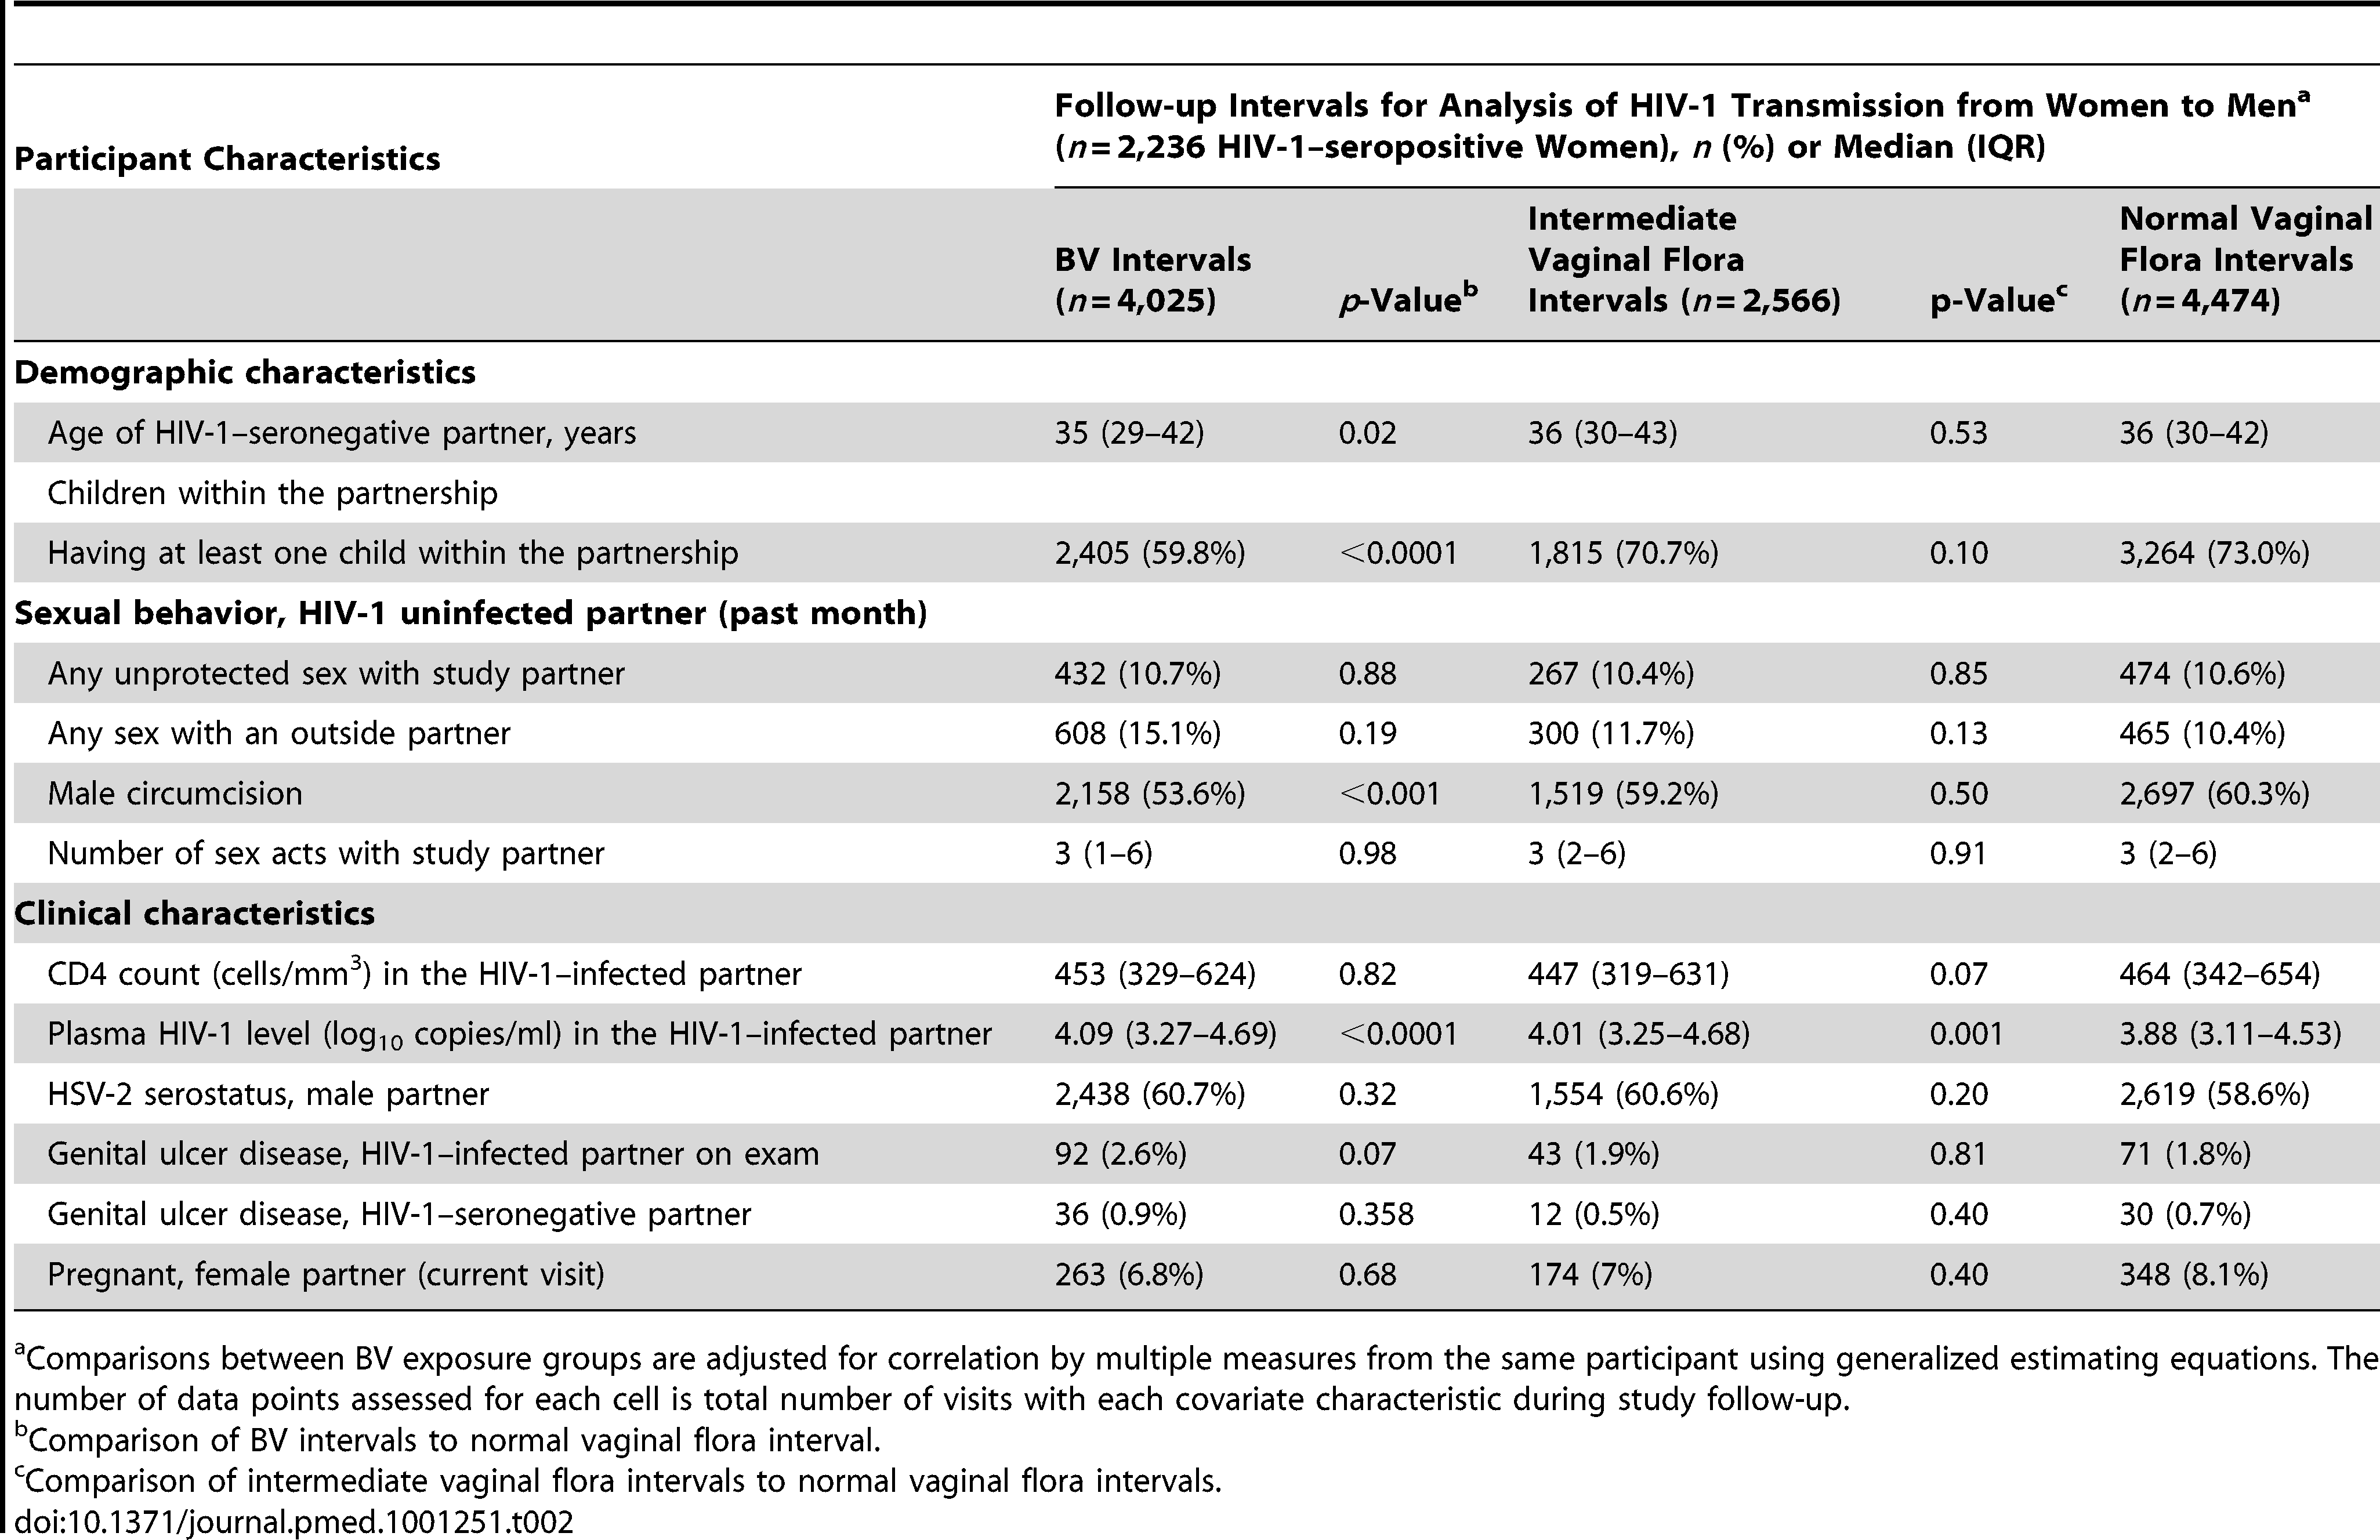 Participant characteristics during quarterly follow-up intervals with BV and intermediate vaginal flora versus normal vaginal flora.